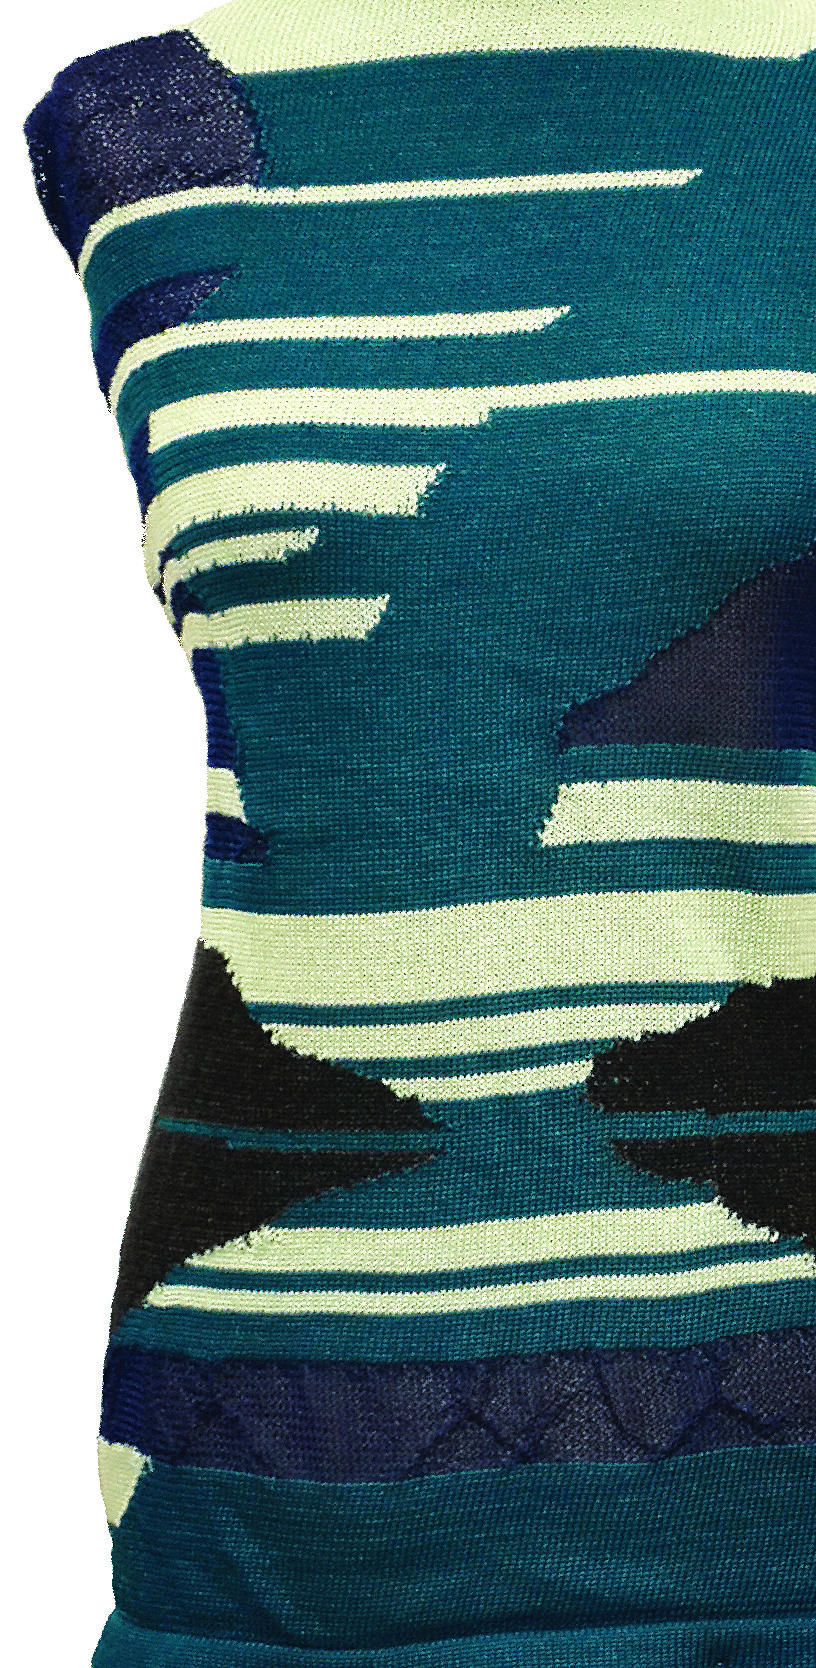 """Stoll body fitted knit - """"Universe"""" collection, Intarsia, https://tanitusha.wix.com/tatiana-elkind"""